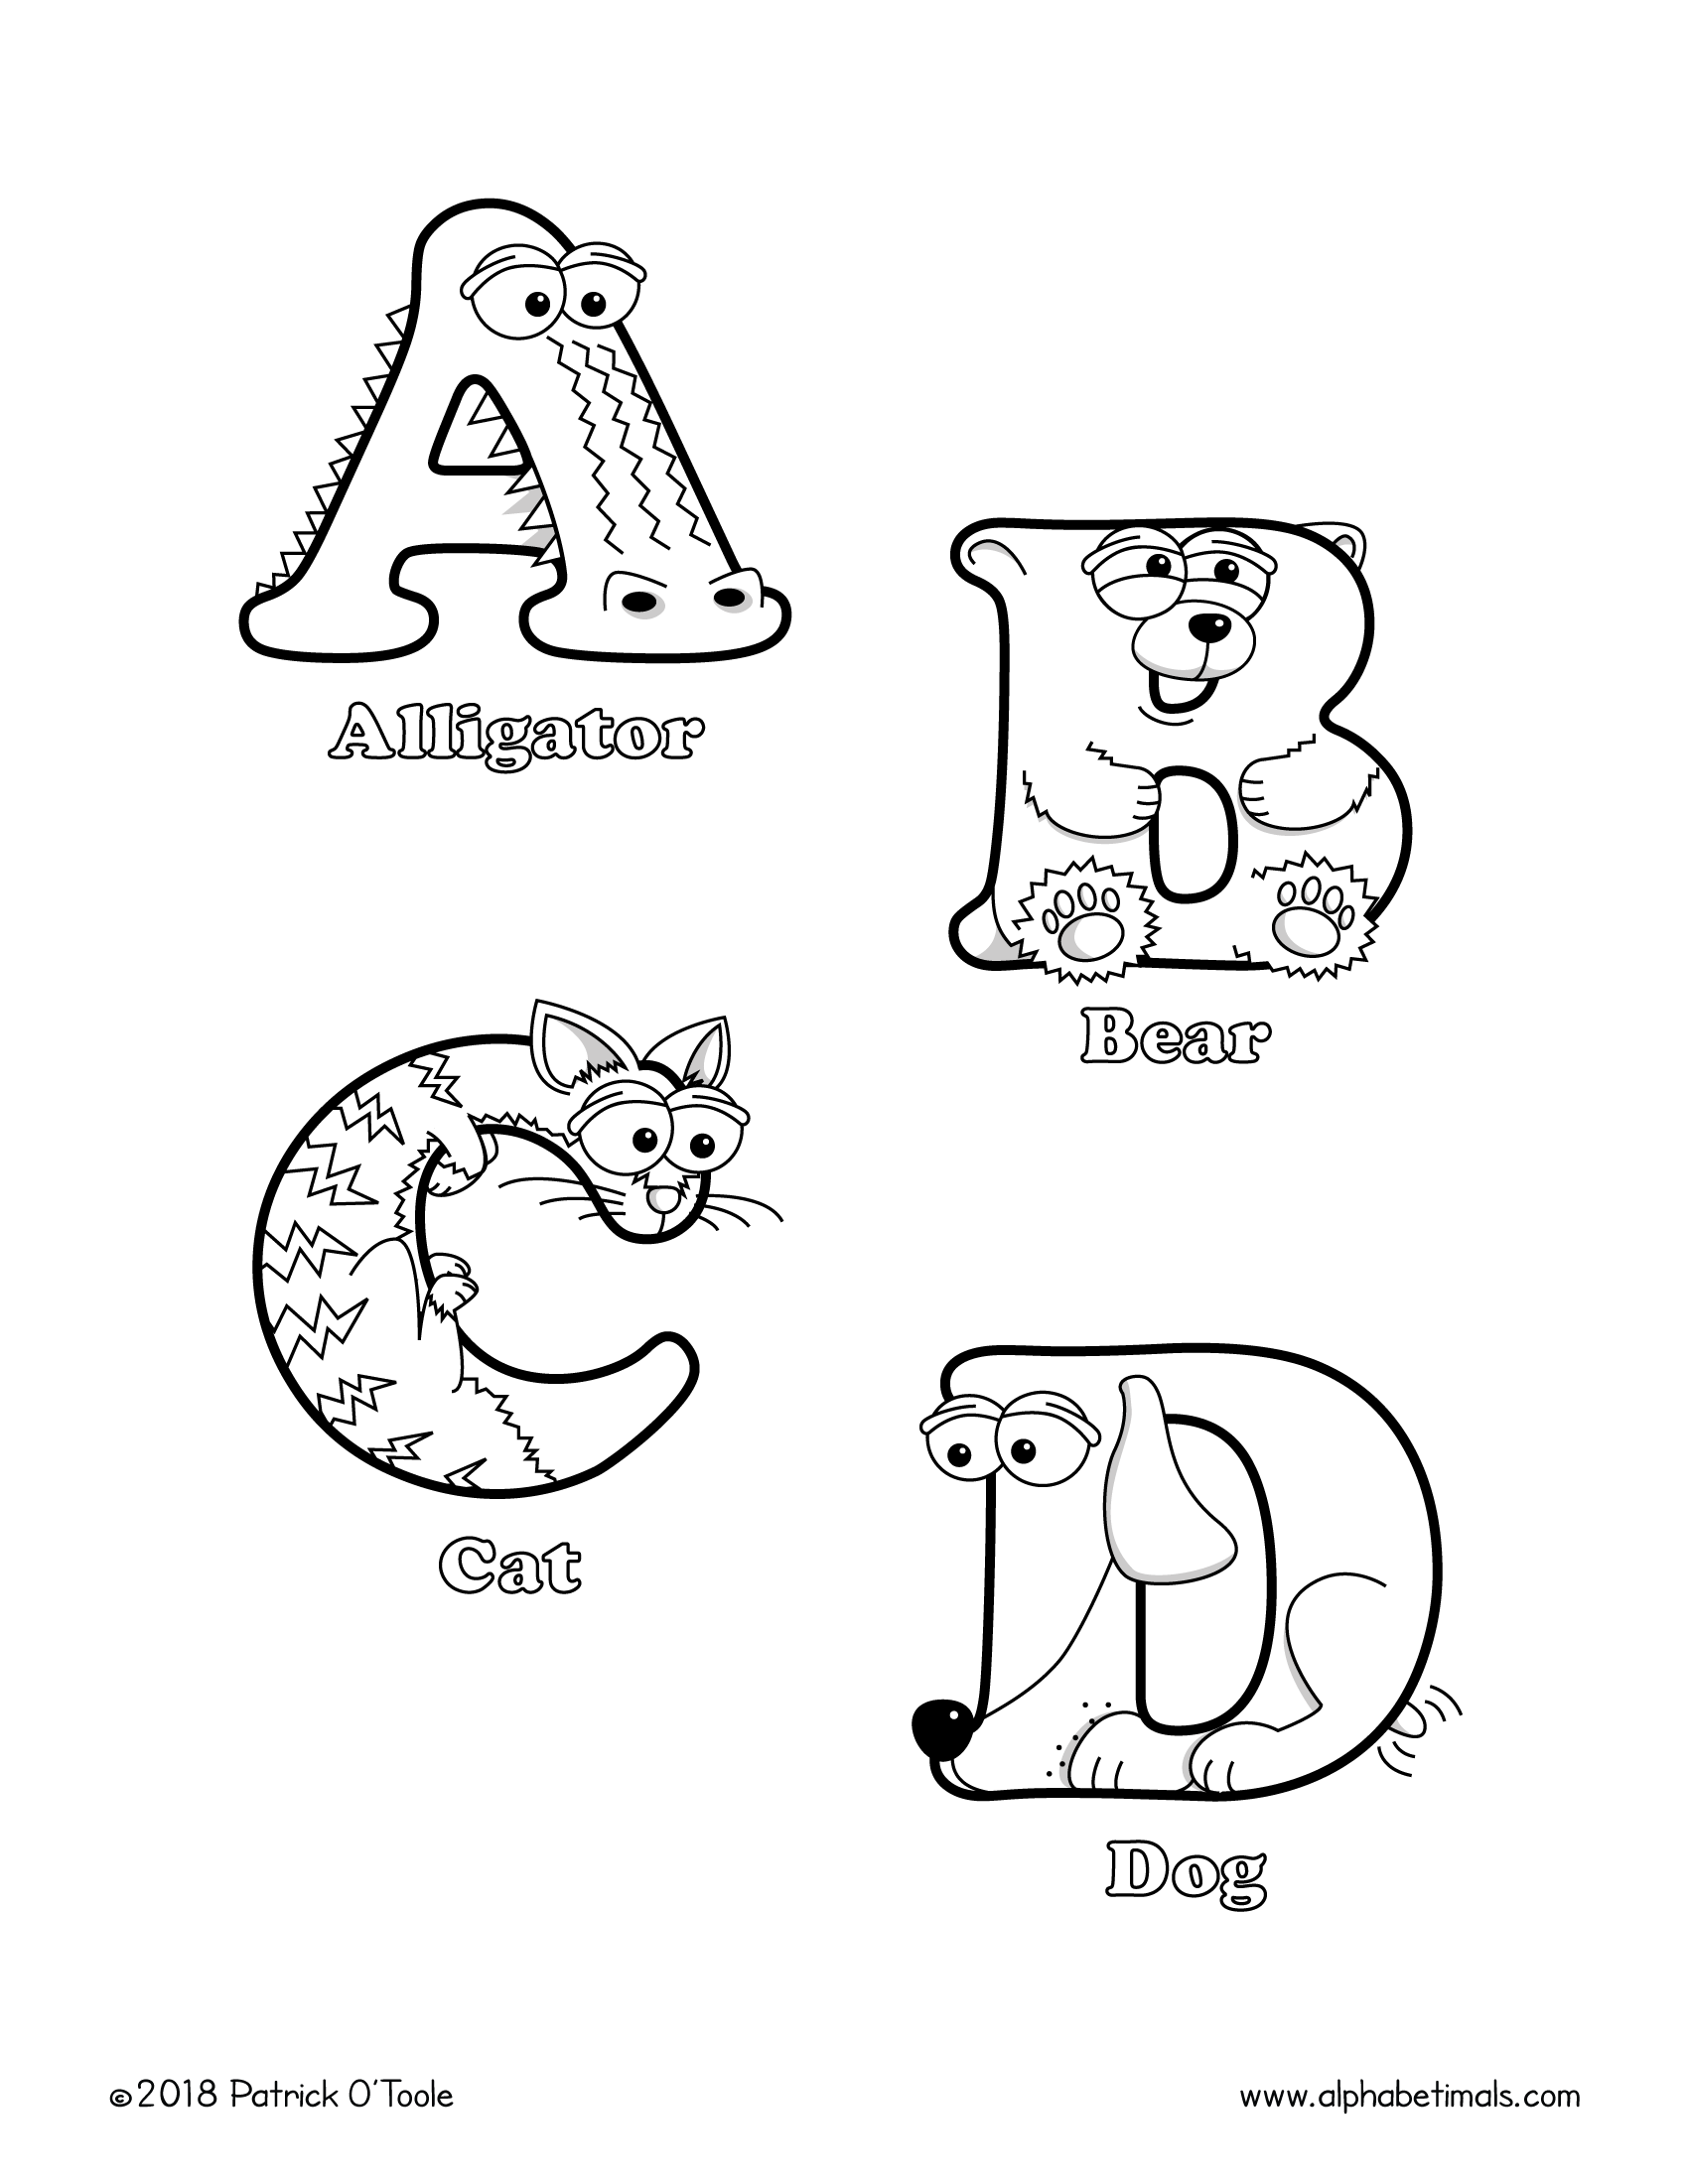 printable alphabet coloring pages animals | Printable Coloring Pages: Uppercase Letters & Animals ...